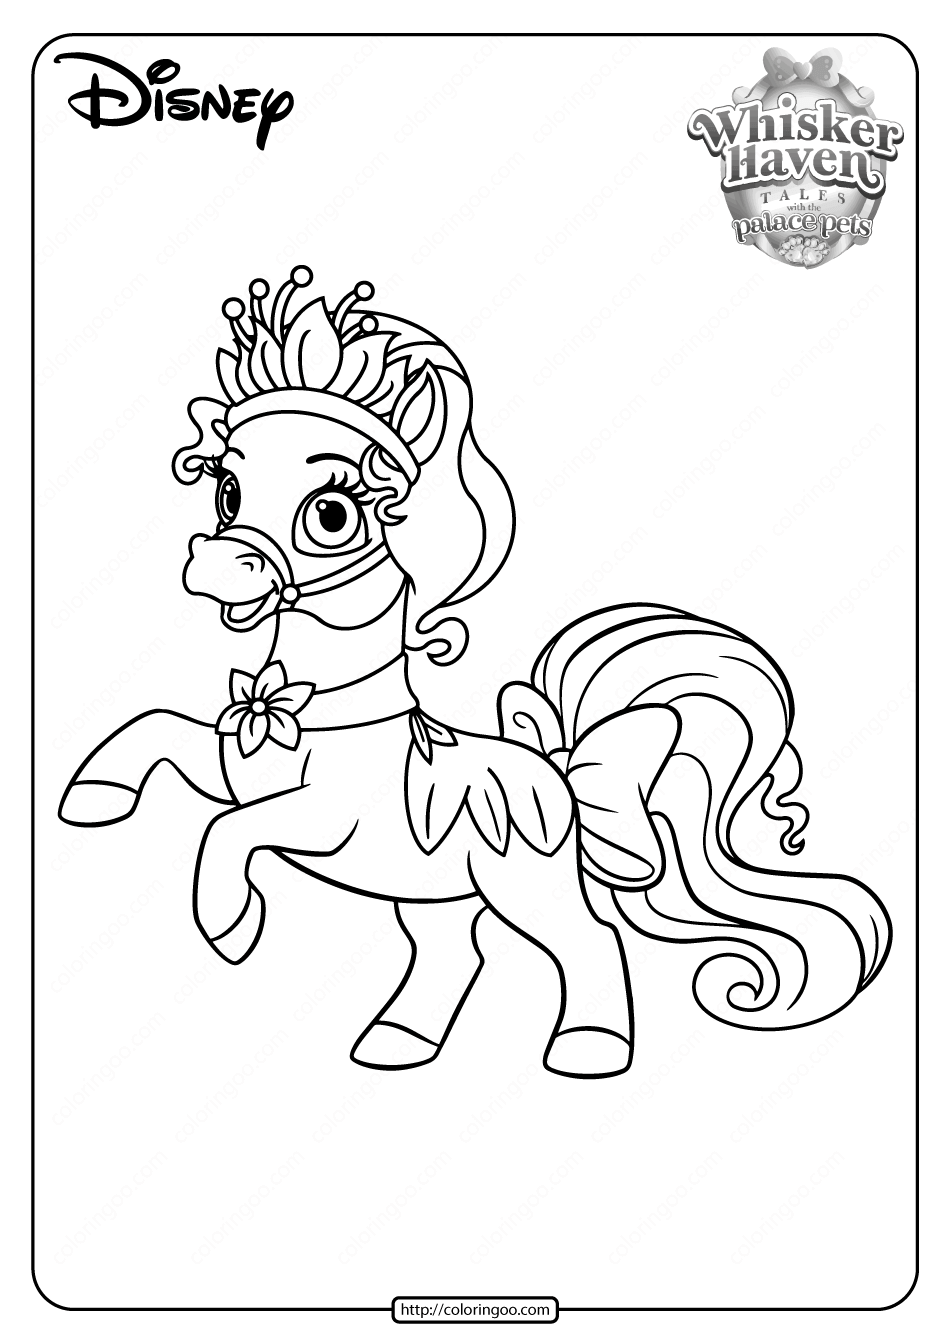 Printable Palace Pets Bayou PDF Coloring Pages